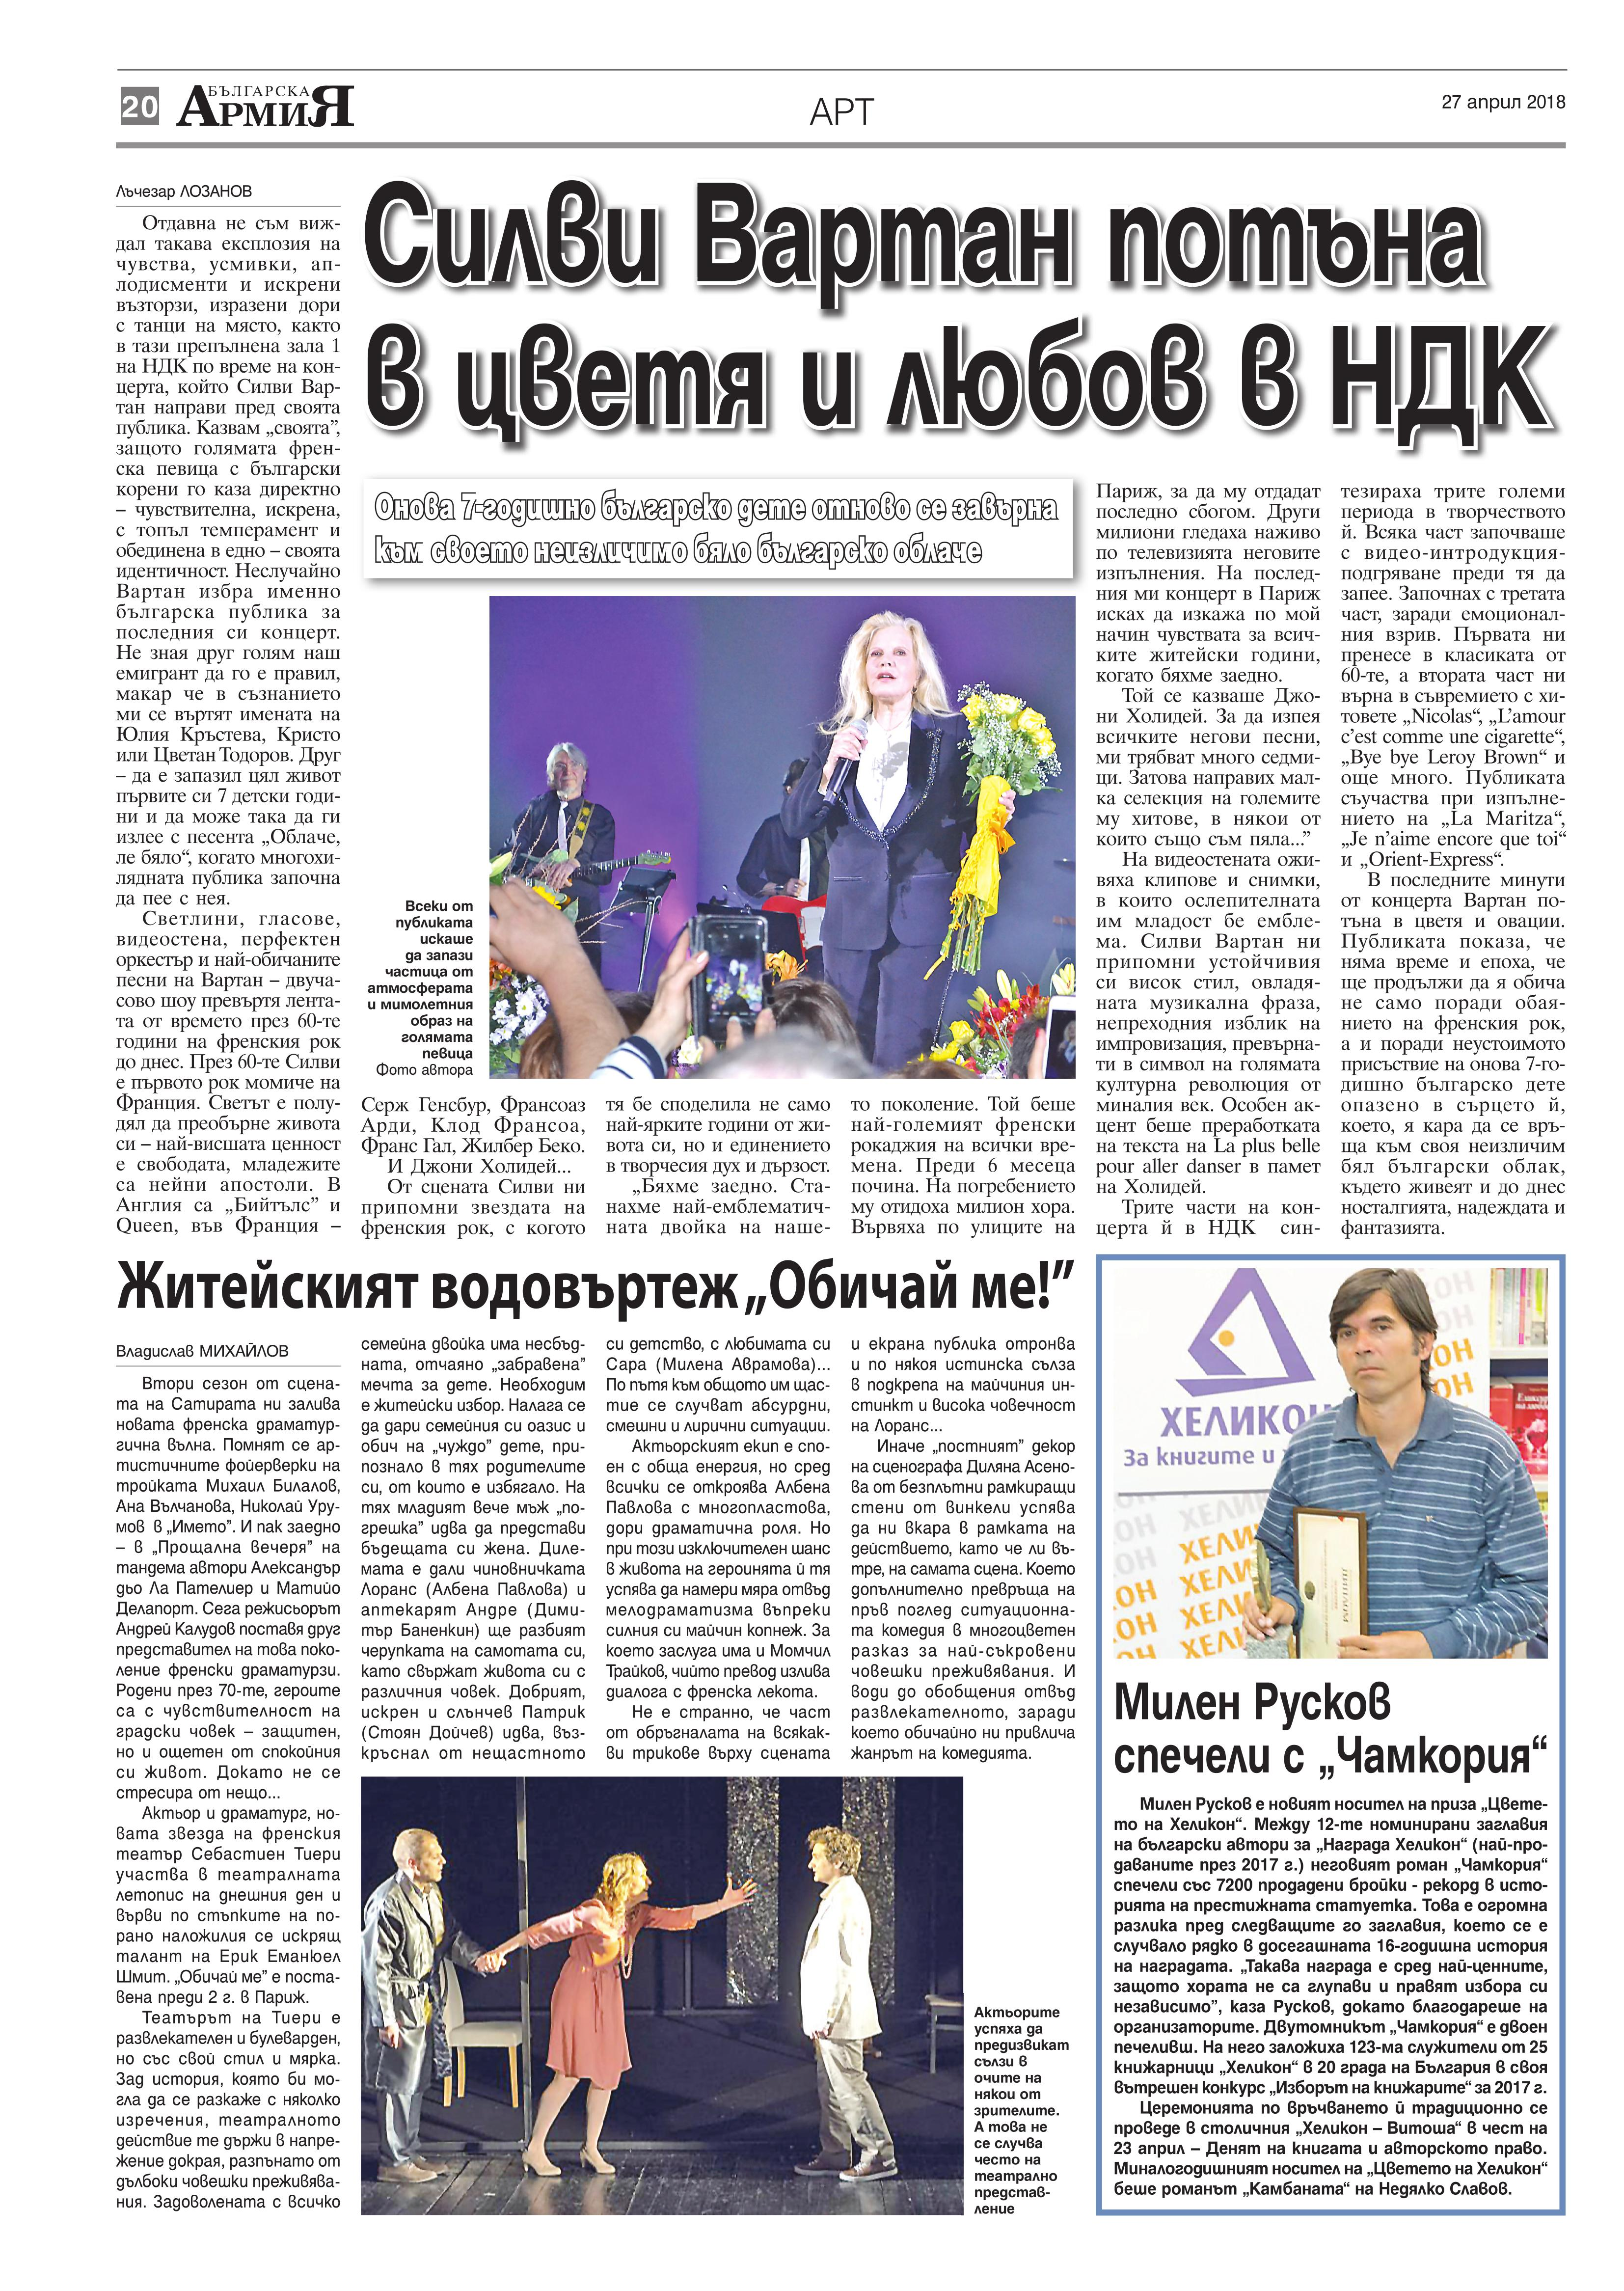 http://armymedia.bg/wp-content/uploads/2015/06/20.page1_-49.jpg